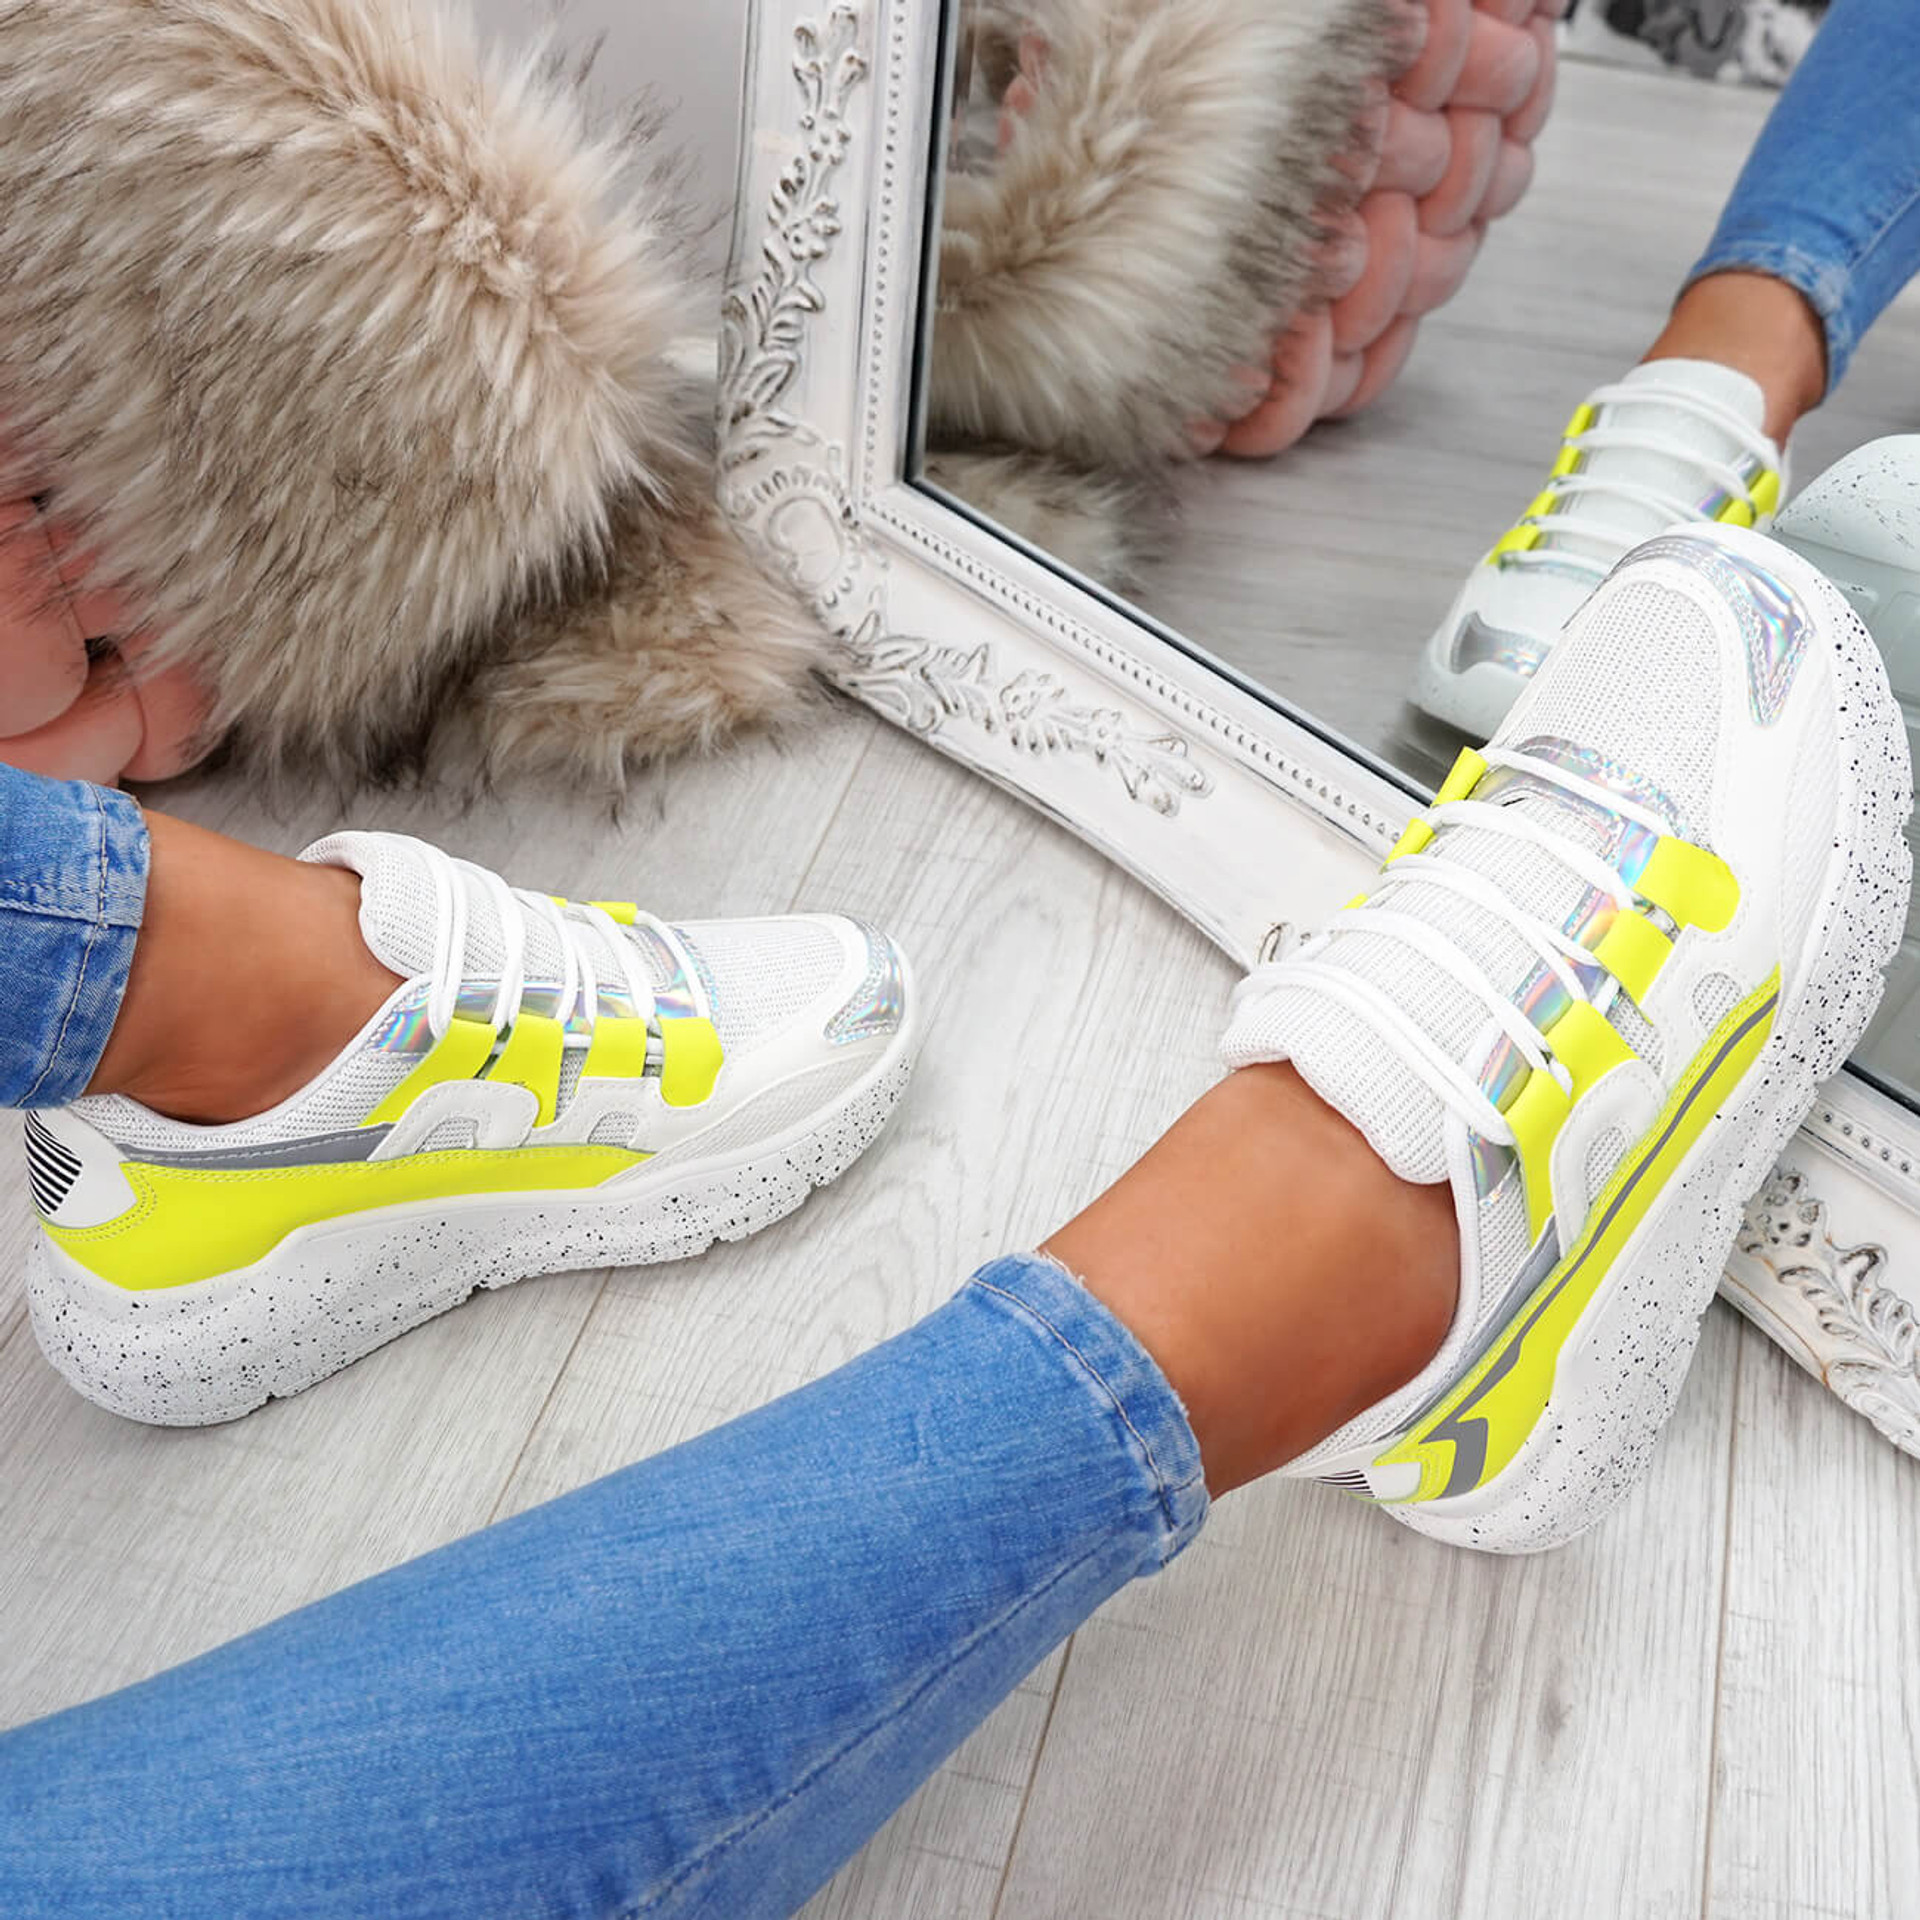 womens yellow and white lace-up trainers chunky sole patent mesh size uk 3 4 5 6 7 8